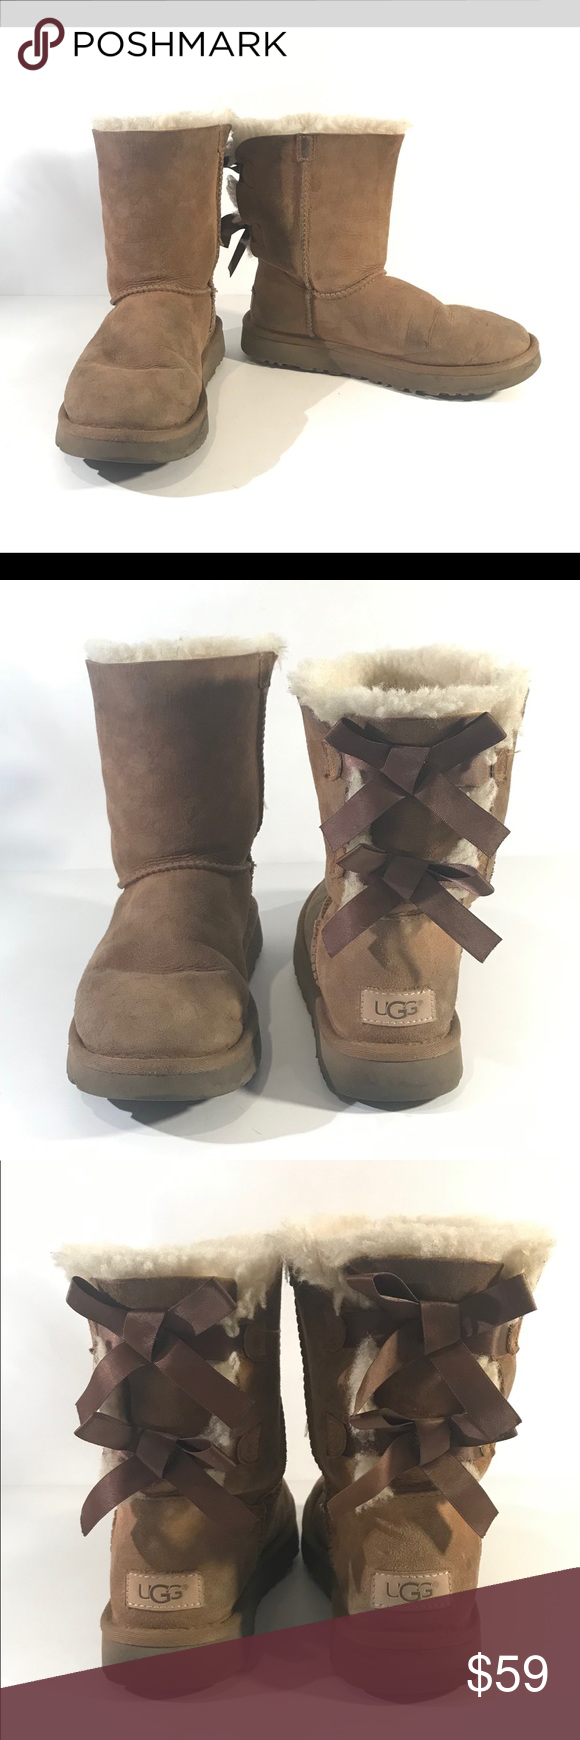 Ugg Australia Womens 6 Bailey Bow Ii Boots 1016225 Broken In Good Condition No Holes Rips Or Stains There Are Scuff Marks Here And Boots Uggs Womens Uggs